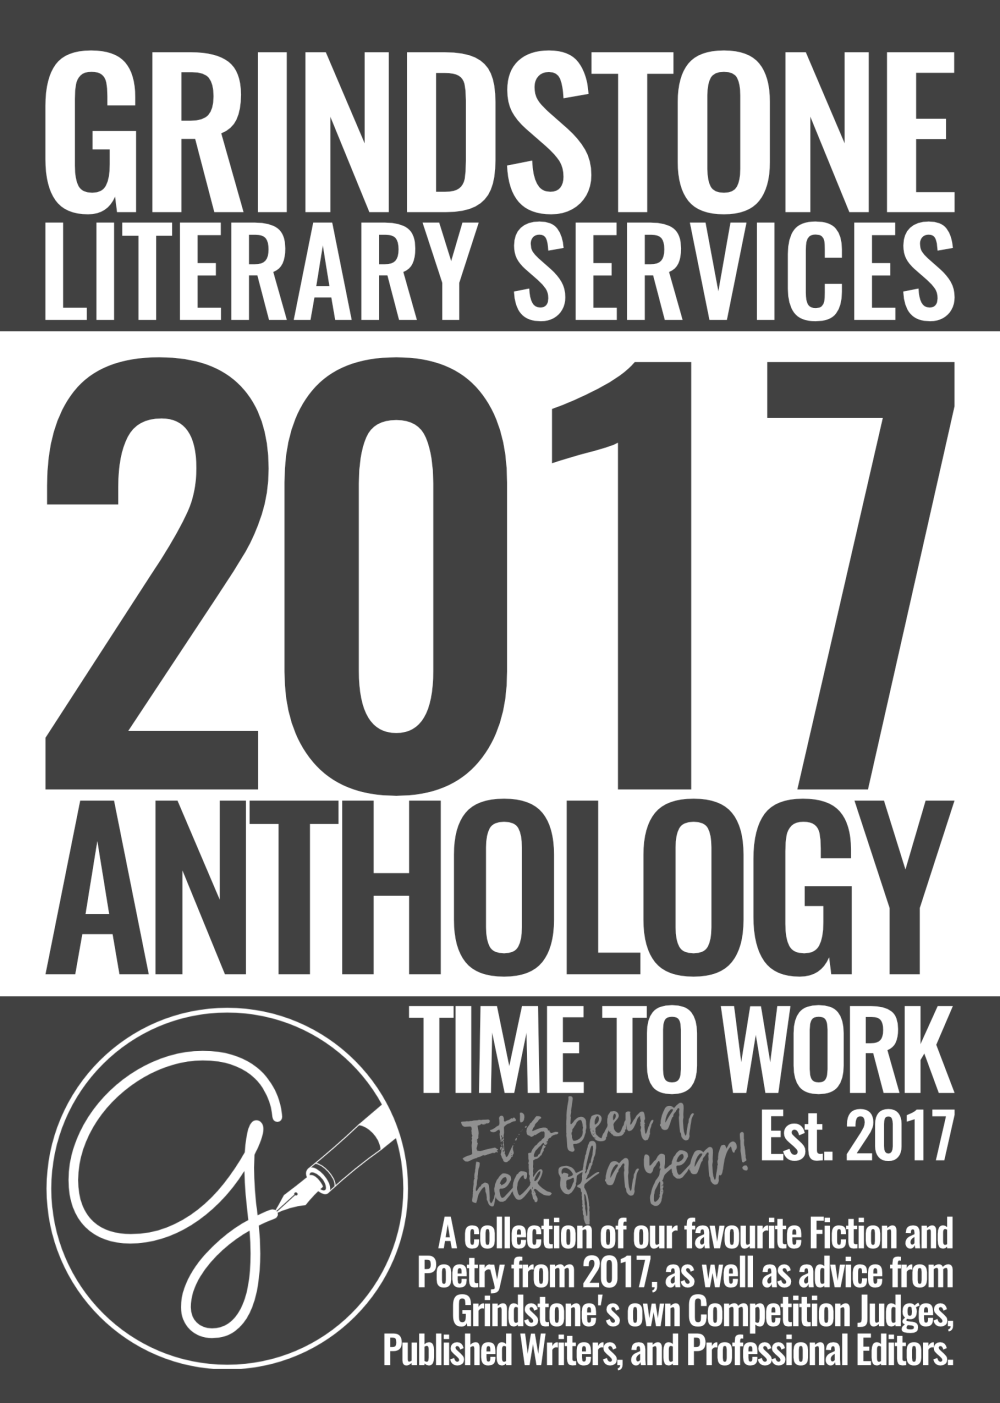 Grindstone Literary Services